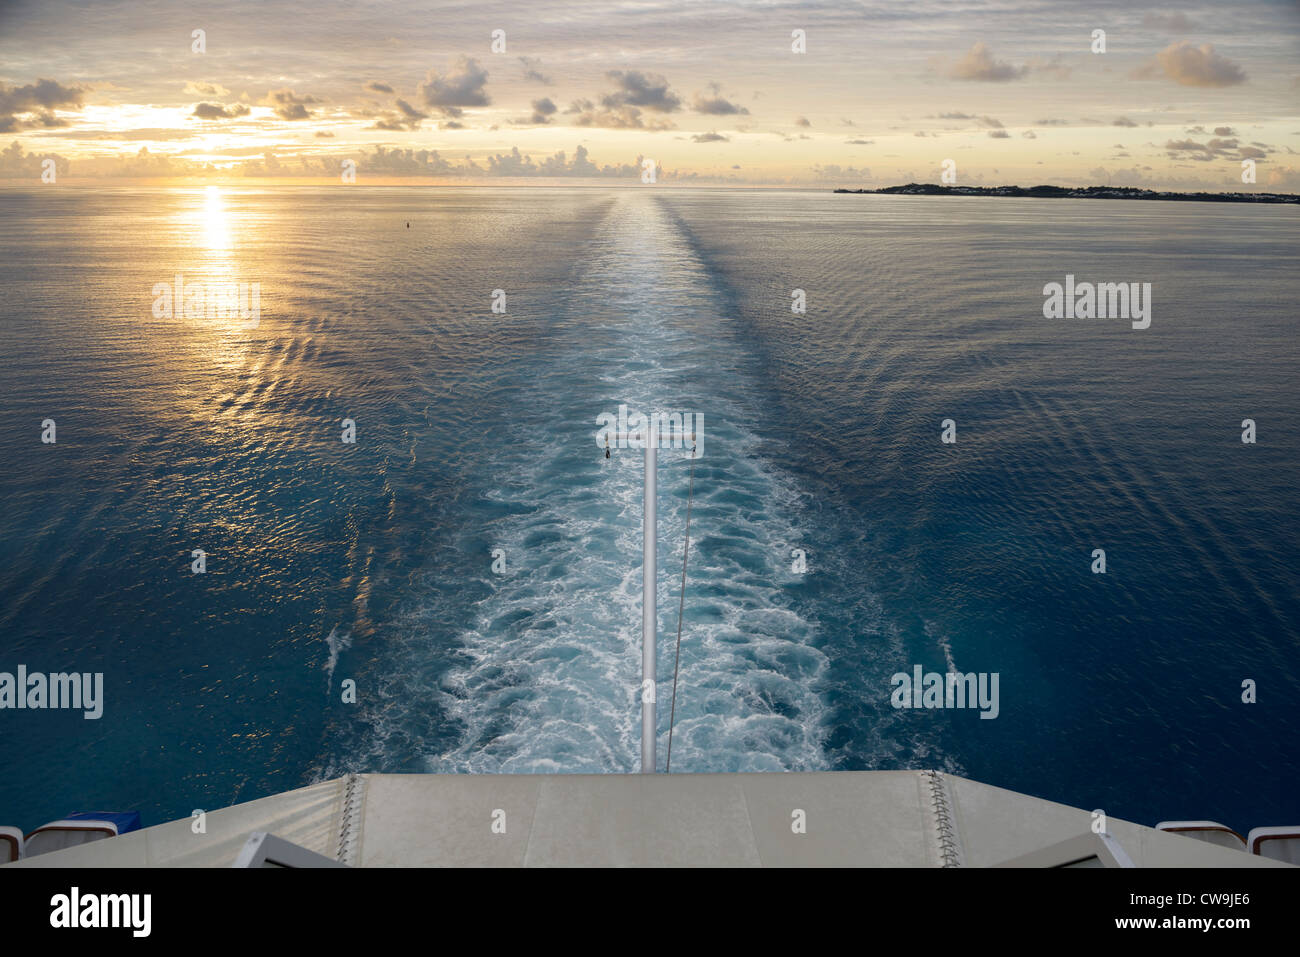 View from the stern of a cruise ship at sea with sunset - Stock Image